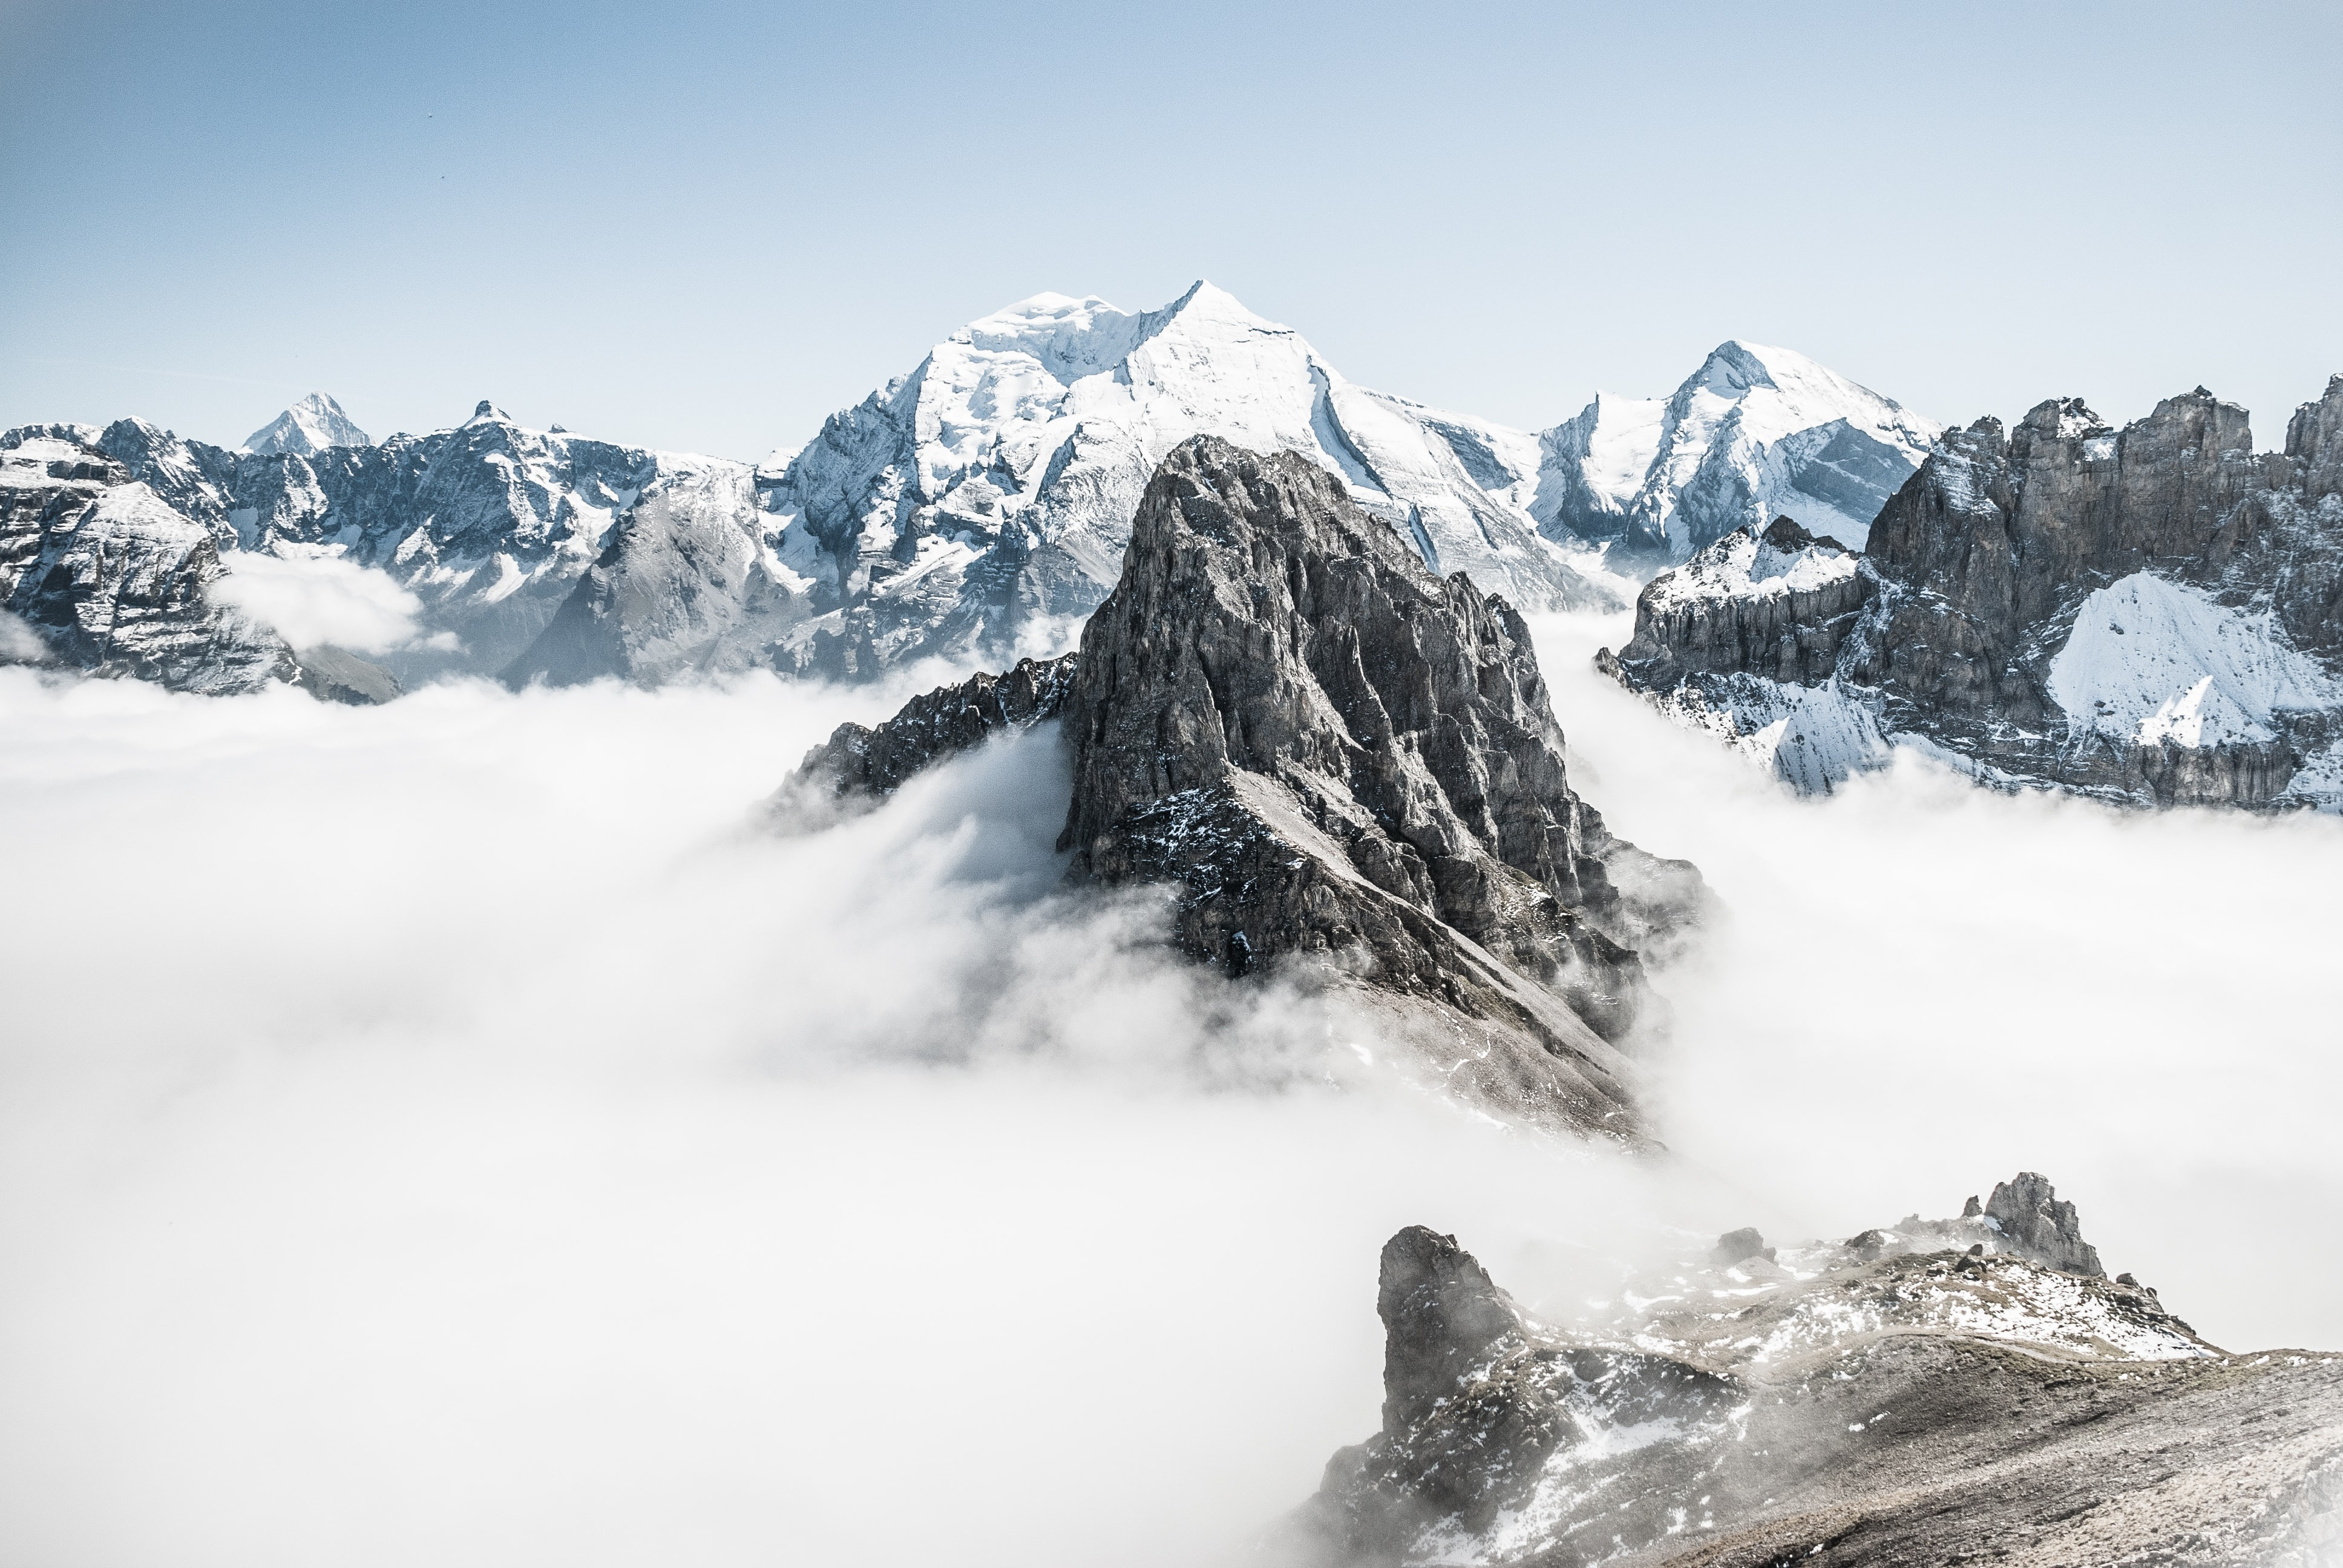 Snowy mountain tops cut through an expanse of clouds